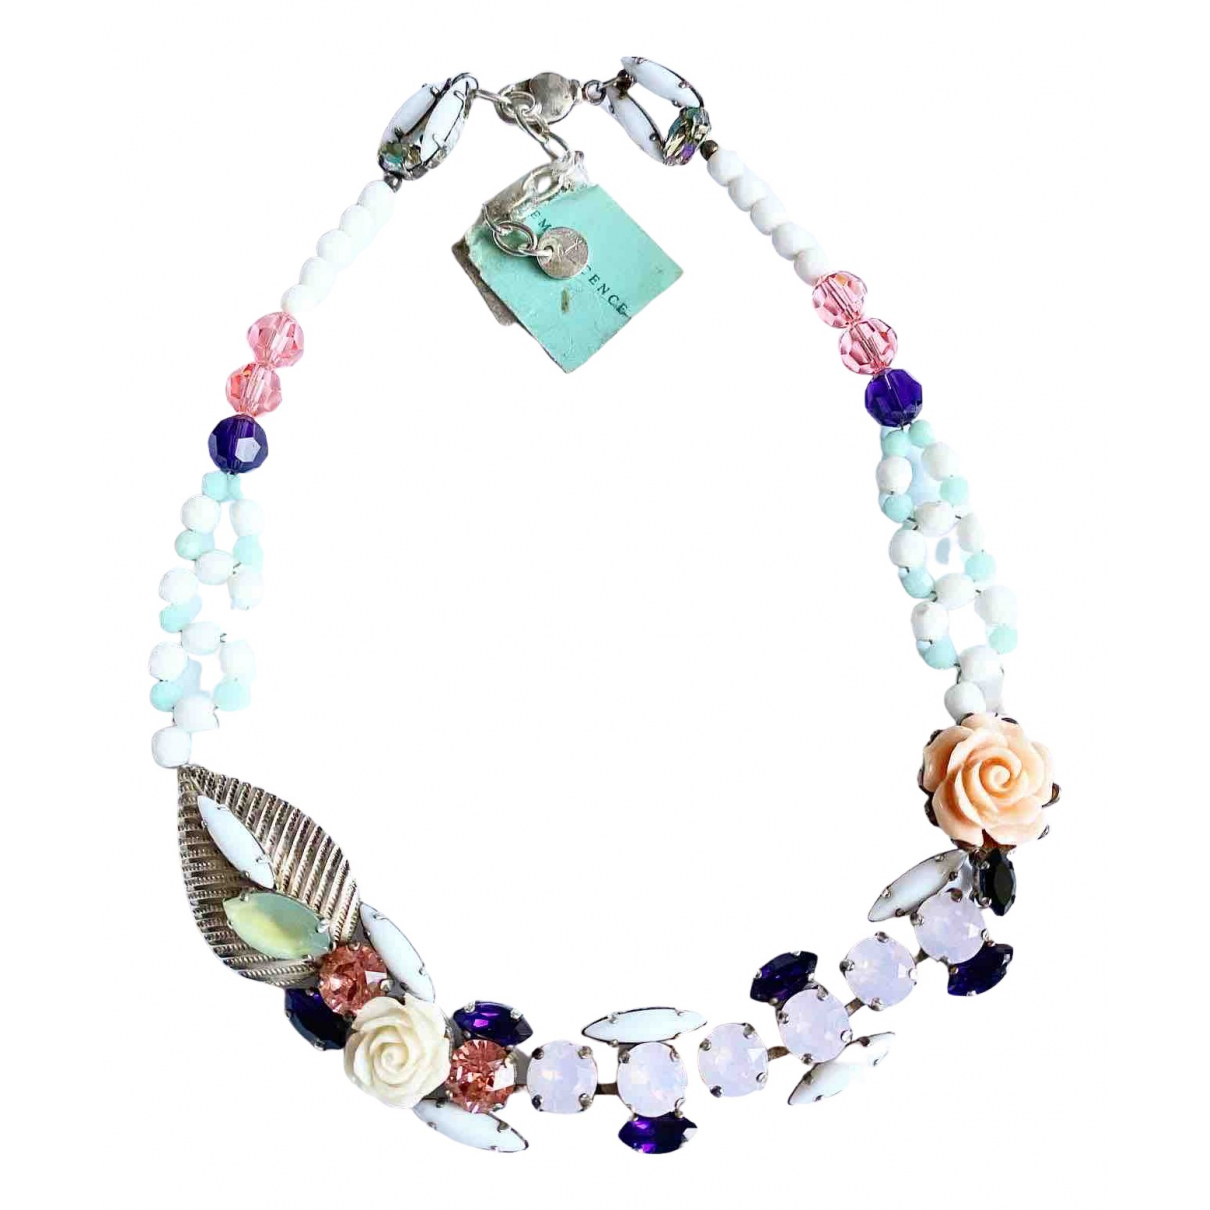 Reminiscence N Metal necklace for Women N